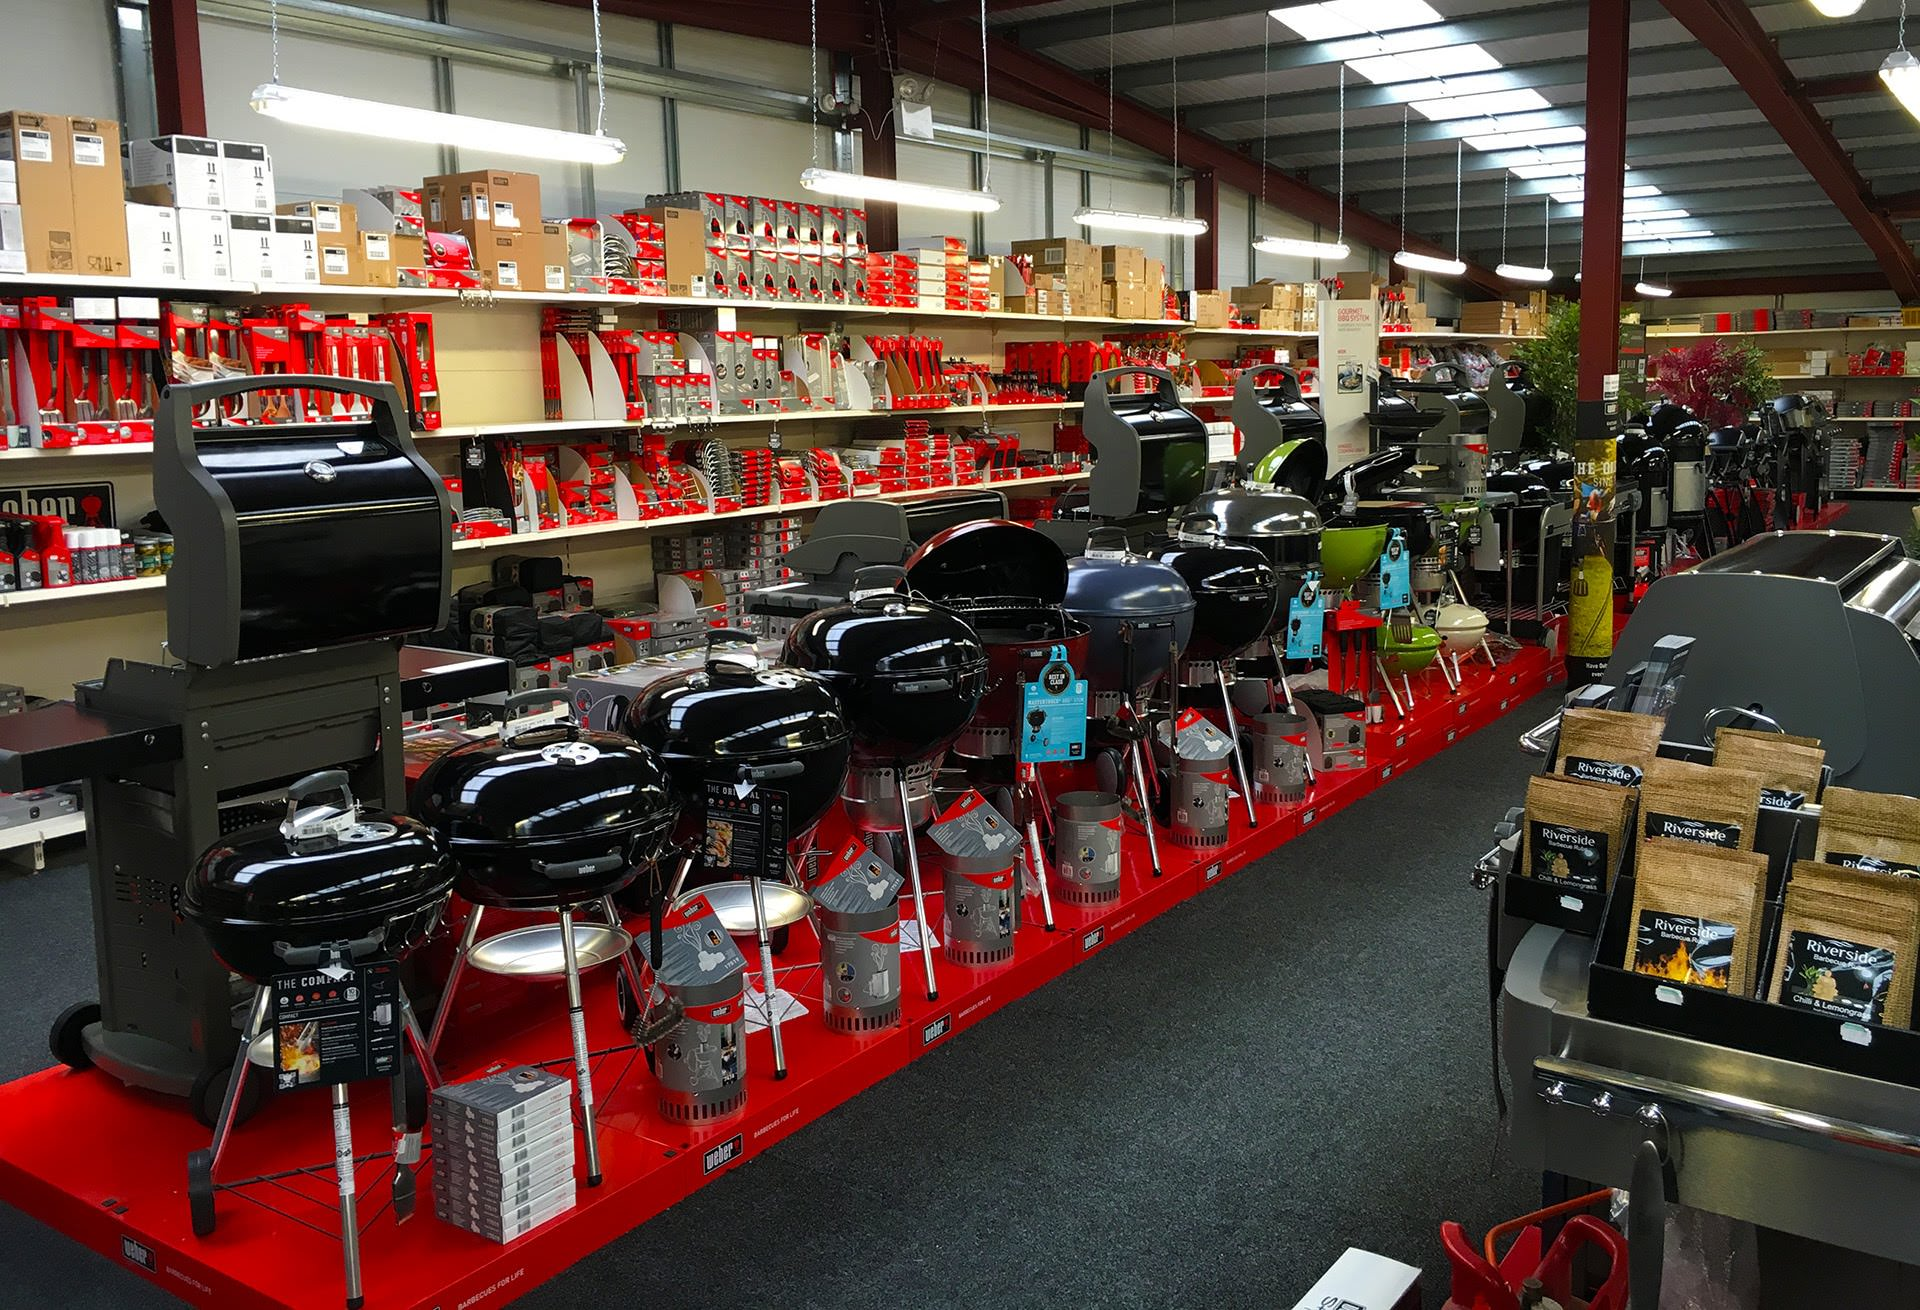 Showroom magasin Barbecue - Grill en Suisse Romande